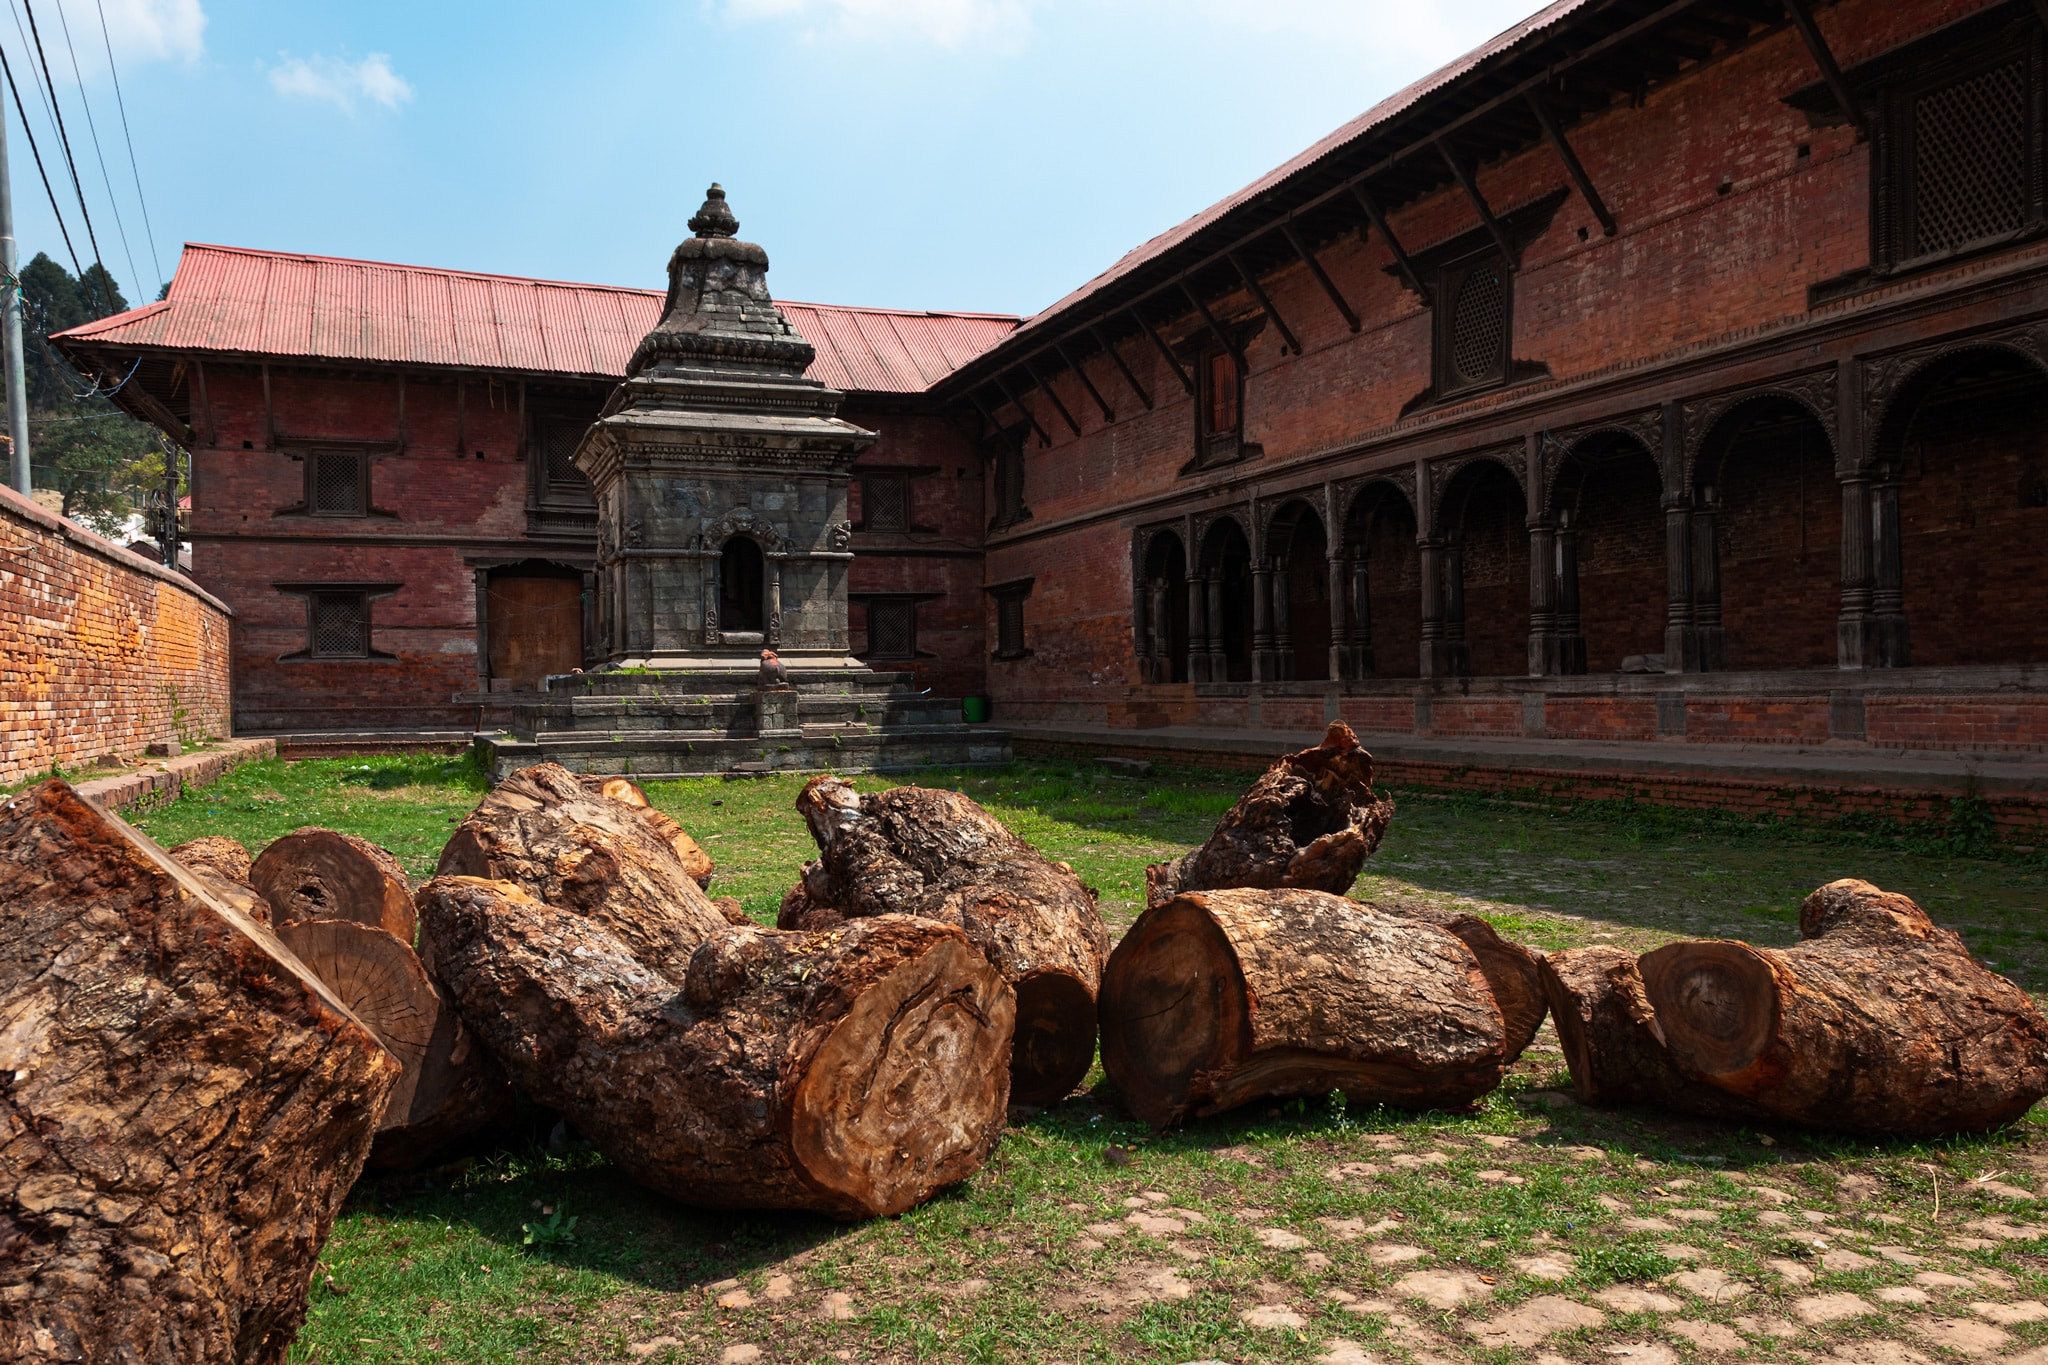 Shrine and wood logs at Pashupatinath Temple. Kathmandu, Nepal.